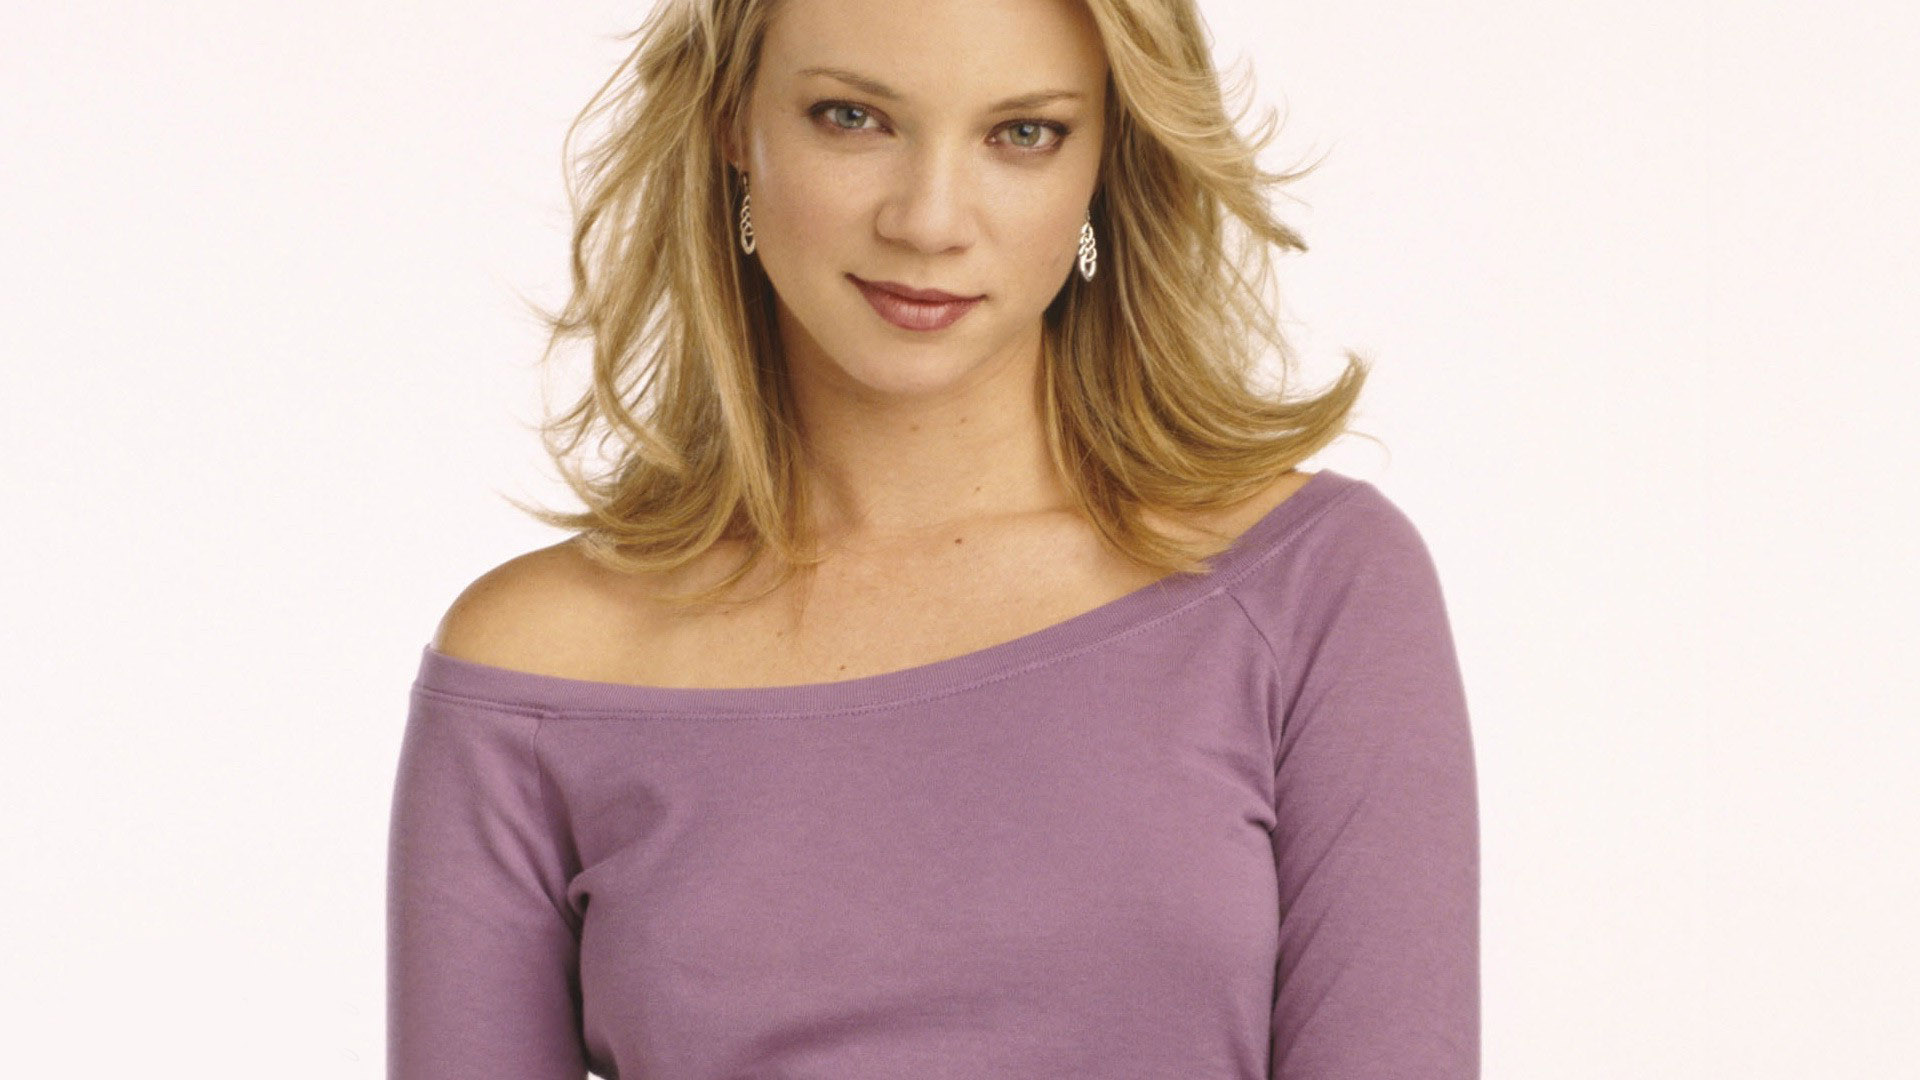 1920x1080 - Amy Smart Wallpapers 29